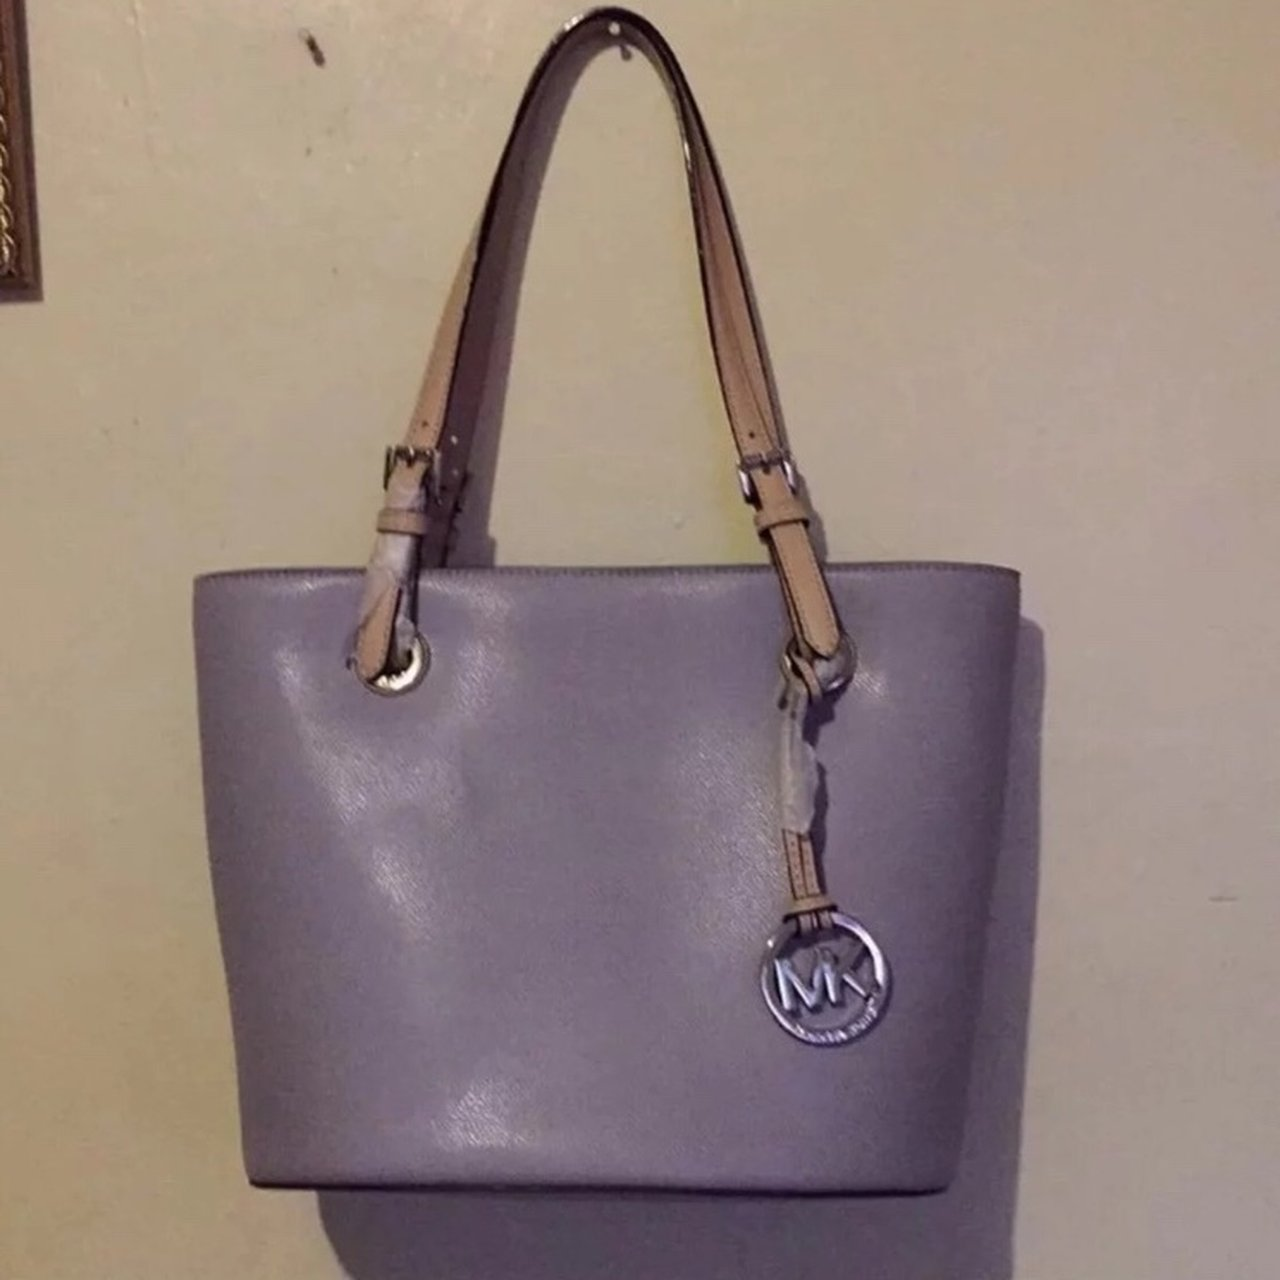 7e77d4f1628e Michael kors jet set tote bag MD tote bag Color Lilac New 4 - Depop